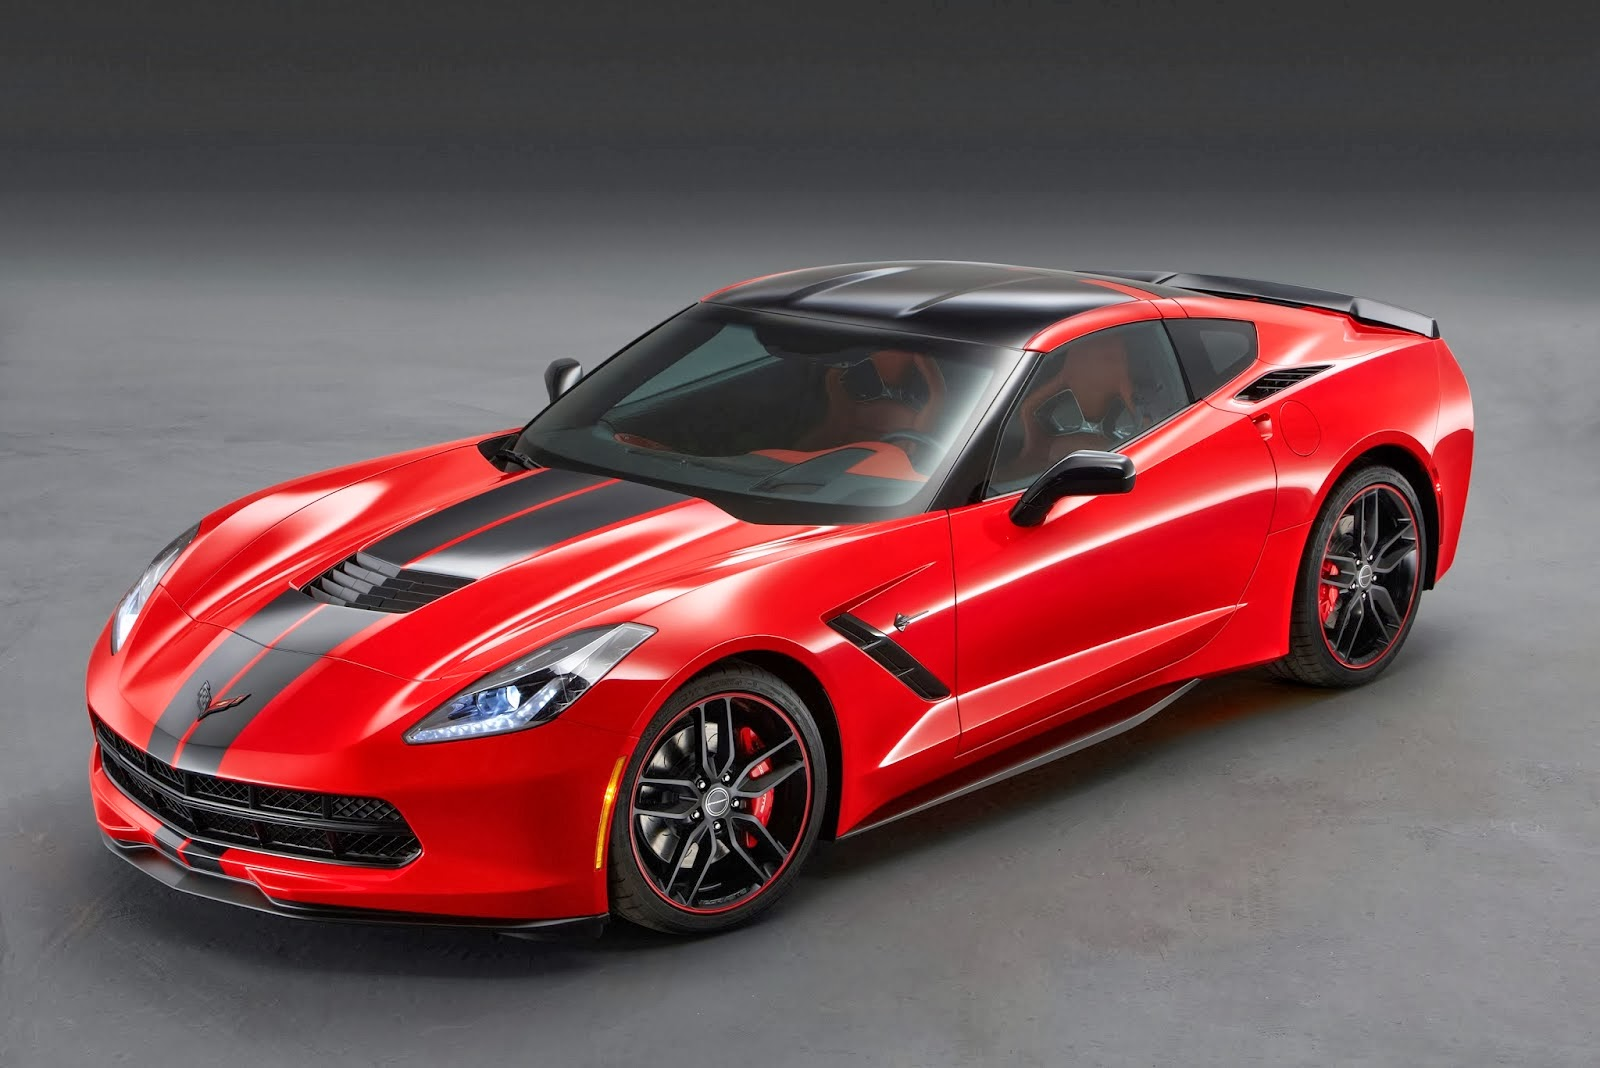 Chevrolet Corvette Stingray Concepts Debut at SEMA 2013